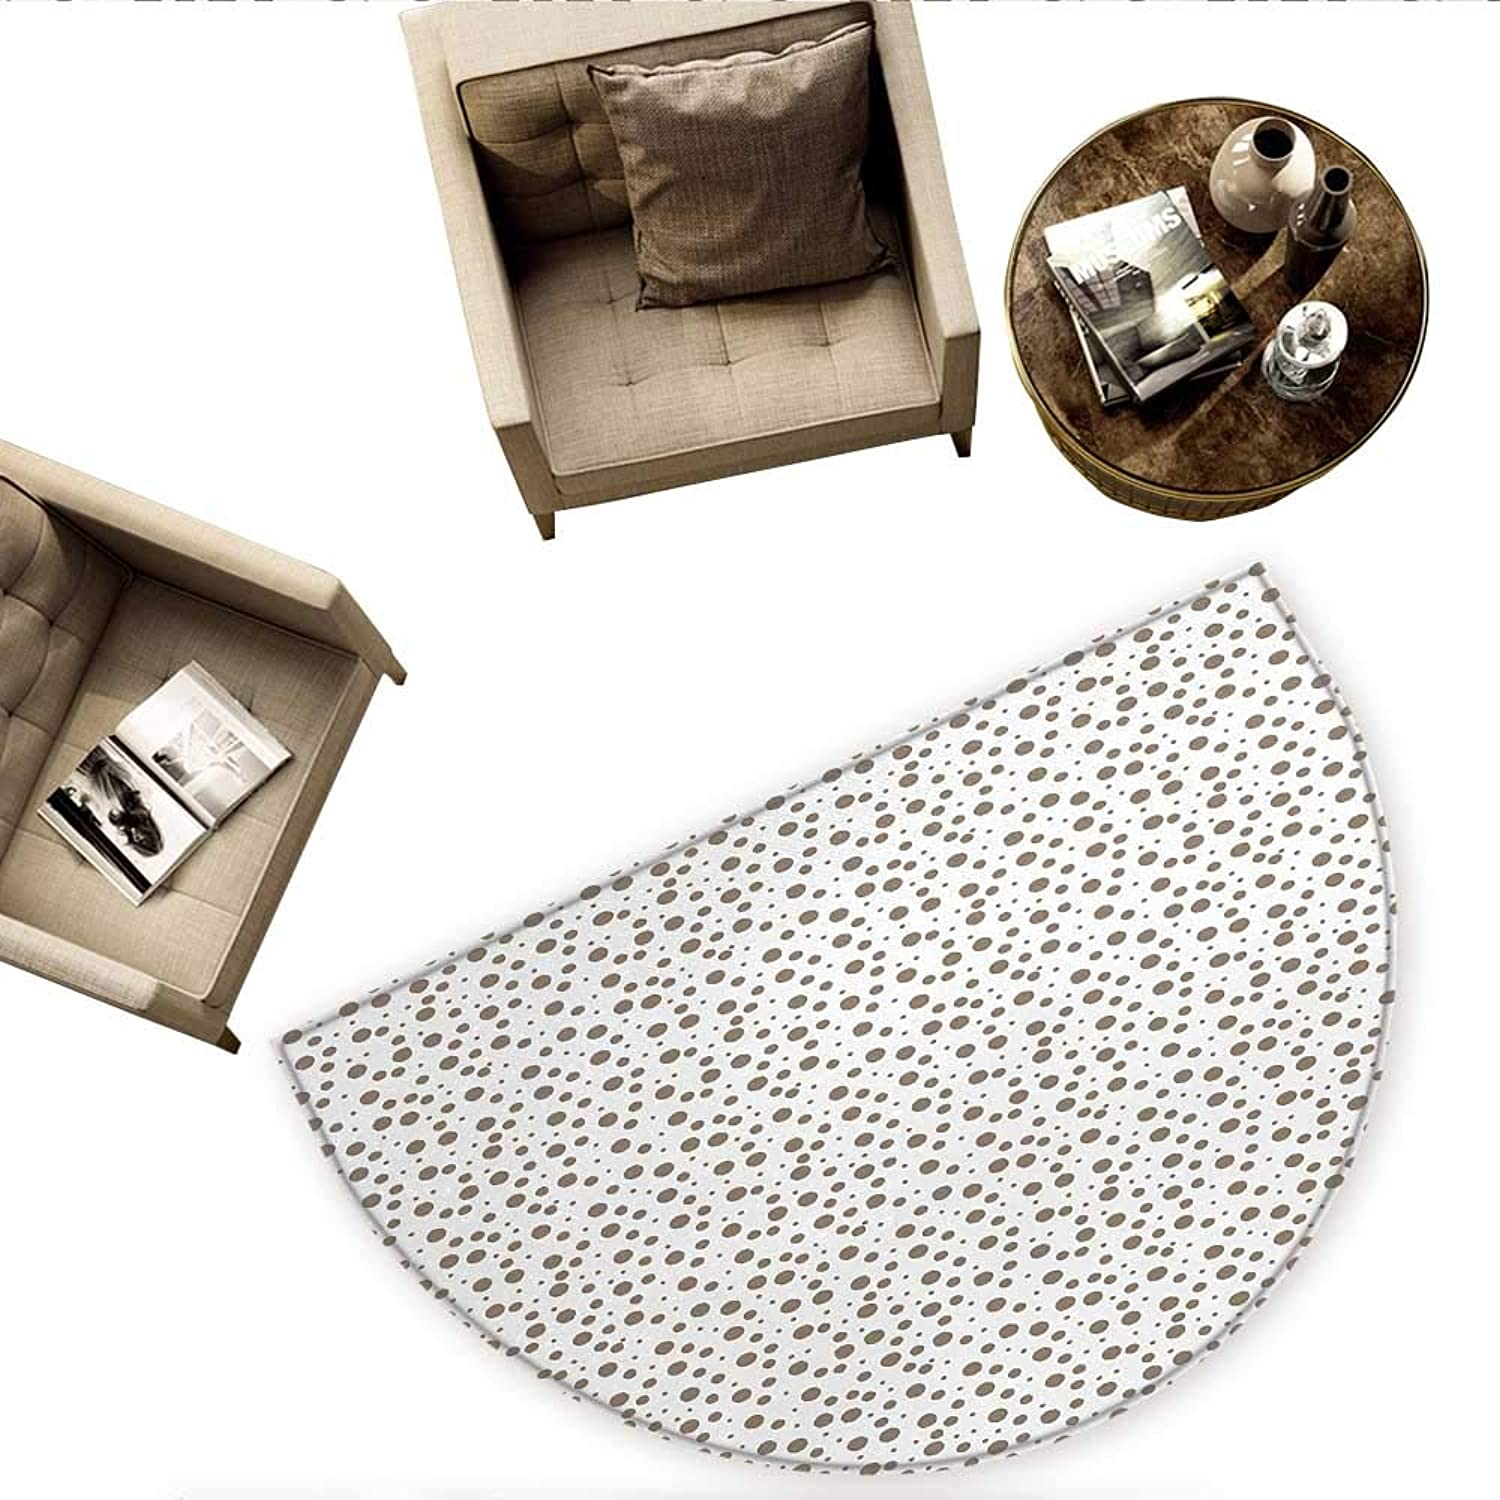 Brown Semicircular CushionBig and Small Drop Like Spots on White Background Vintage Style Old Fashioned Design Entry Door Mat H 66.9  xD 100.4  Cocoa White